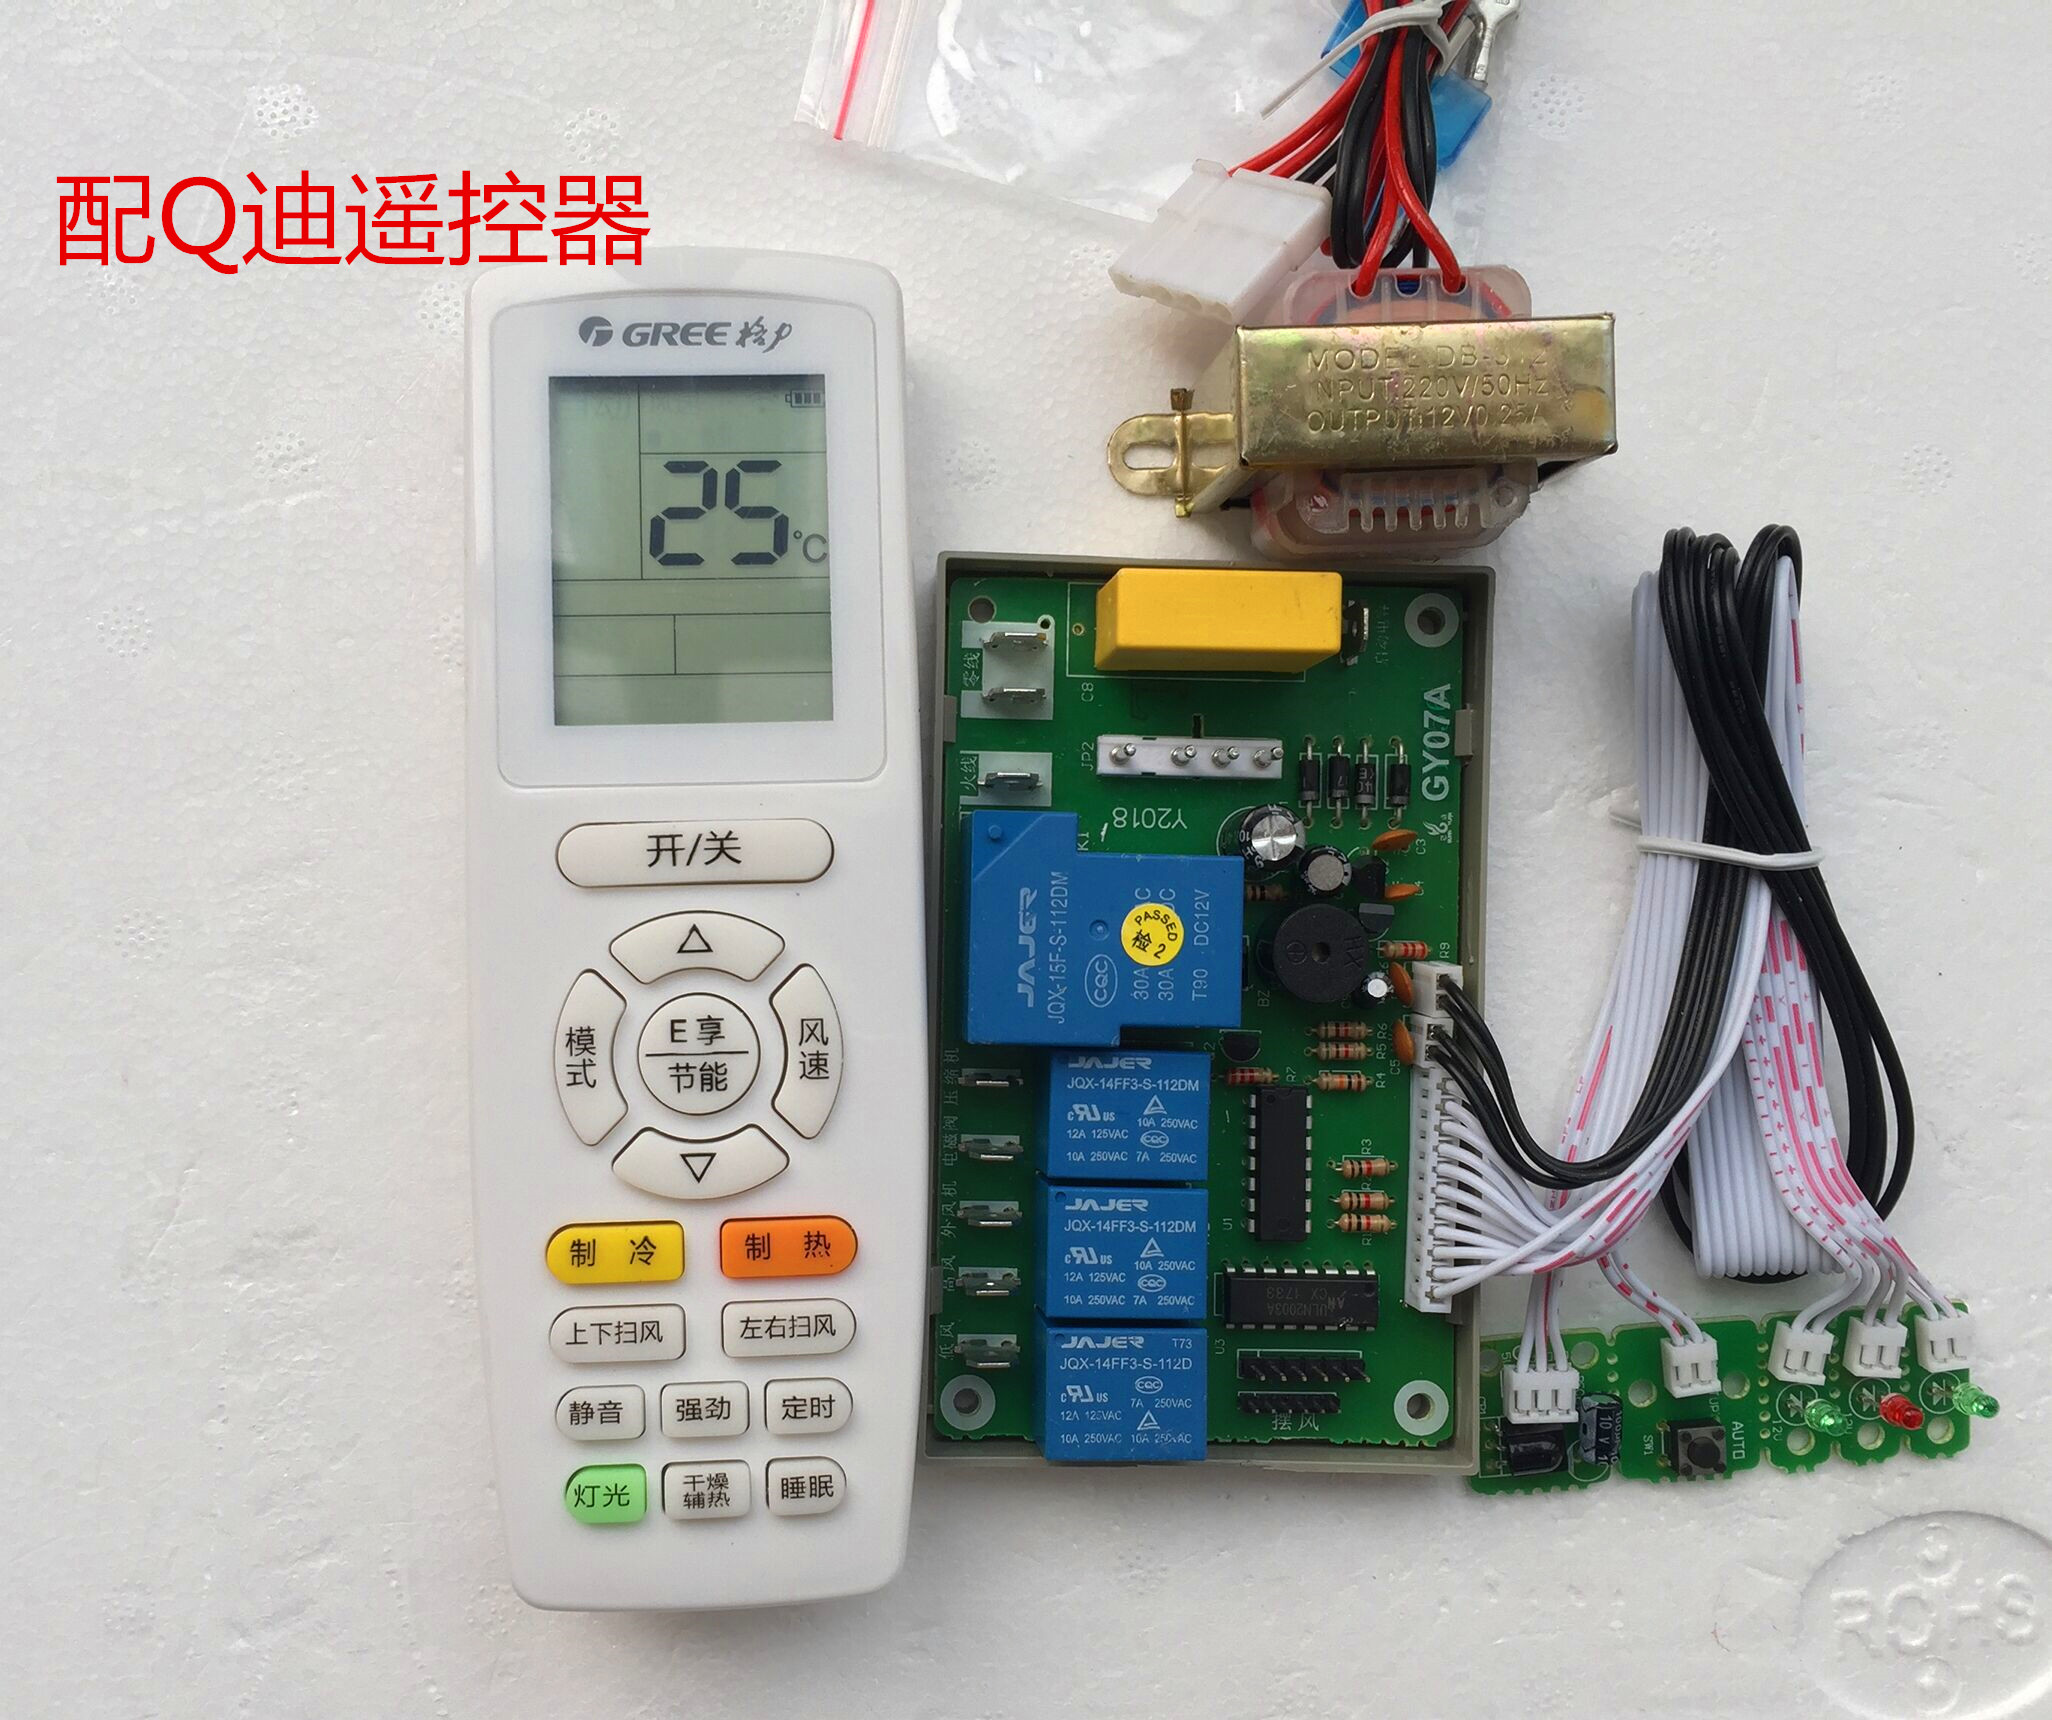 Hanging Air Conditioning Control Panel, Cold And Warm Double Probe Board, Universal Conversion Board